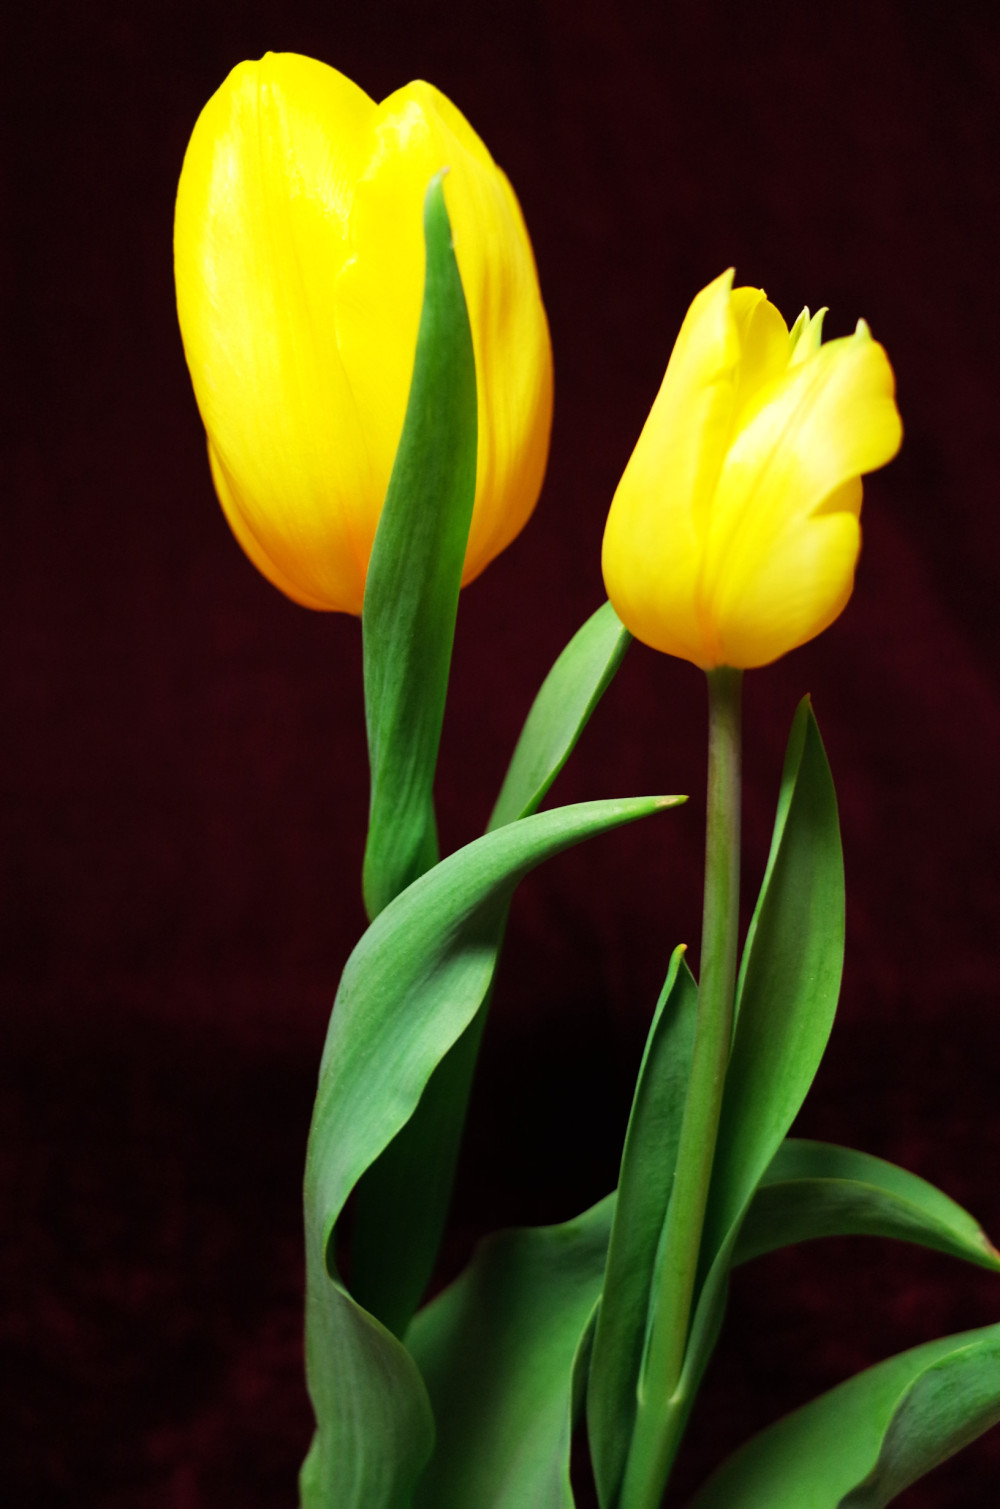 2 yellow tulips like 2 lovers hugging each other